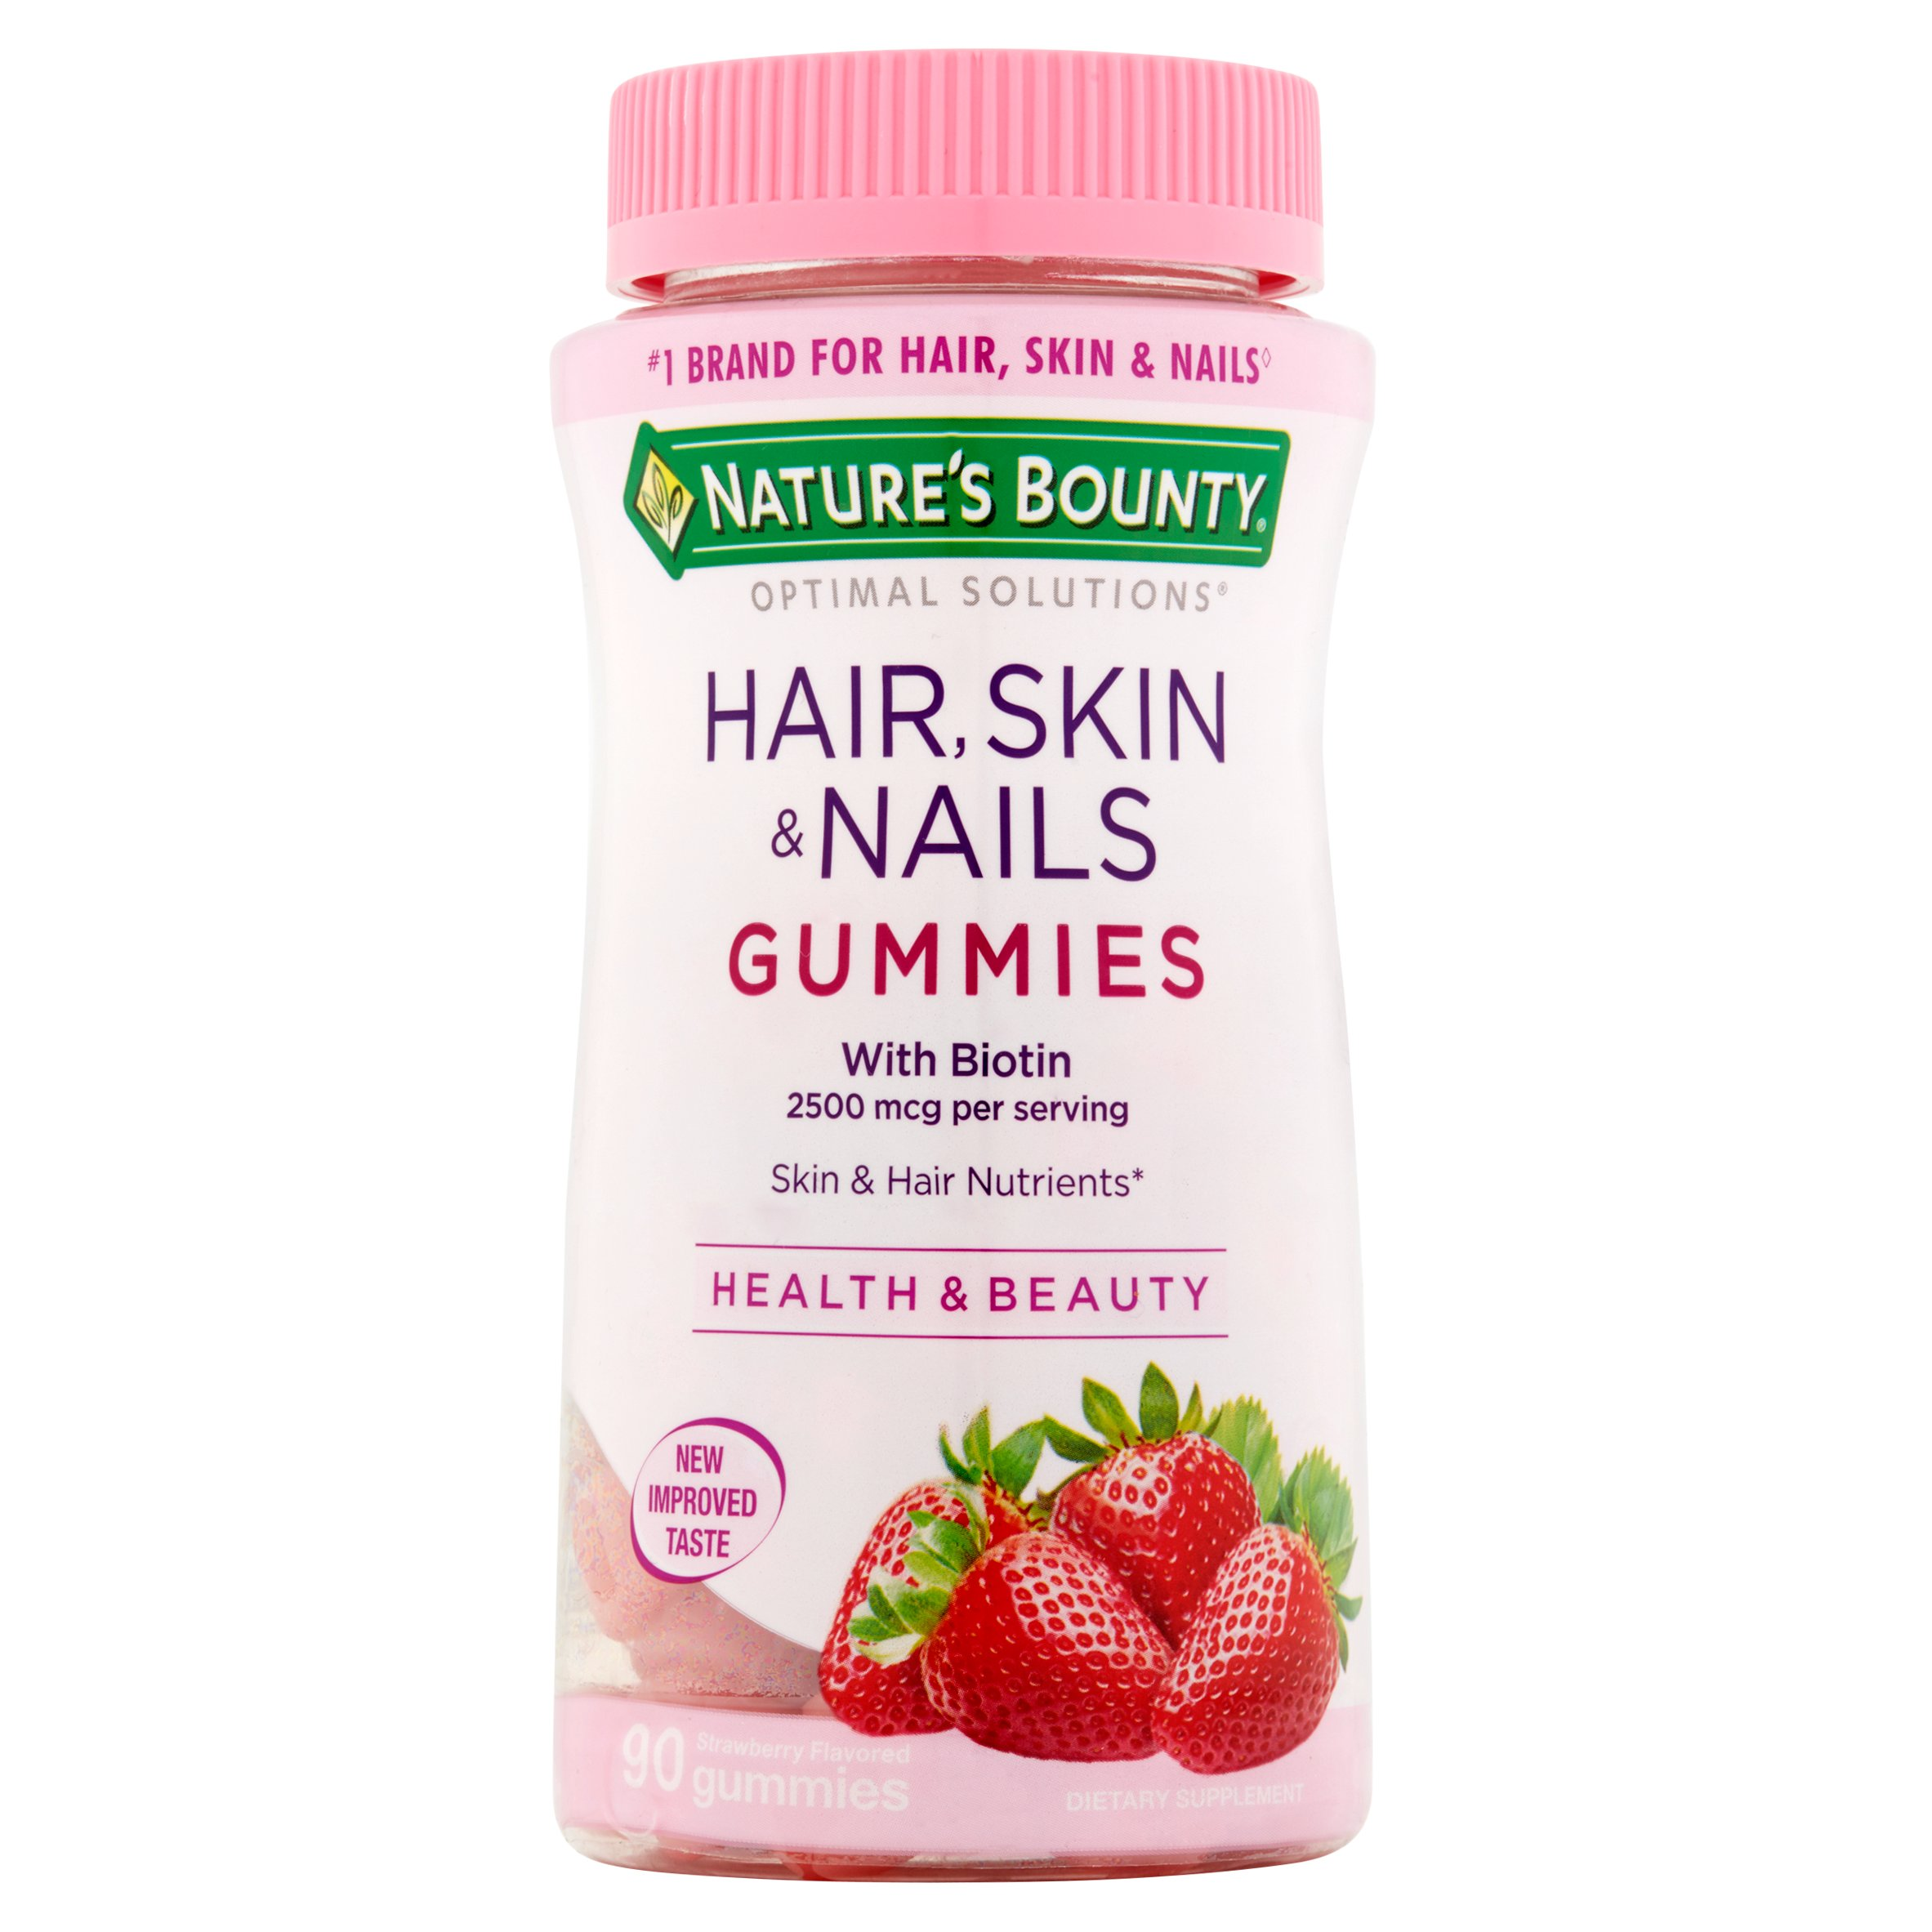 Nature's Bounty Optimal Solutions Hair, Skin & Nails Strawberry Flavored Gummies, 90 count